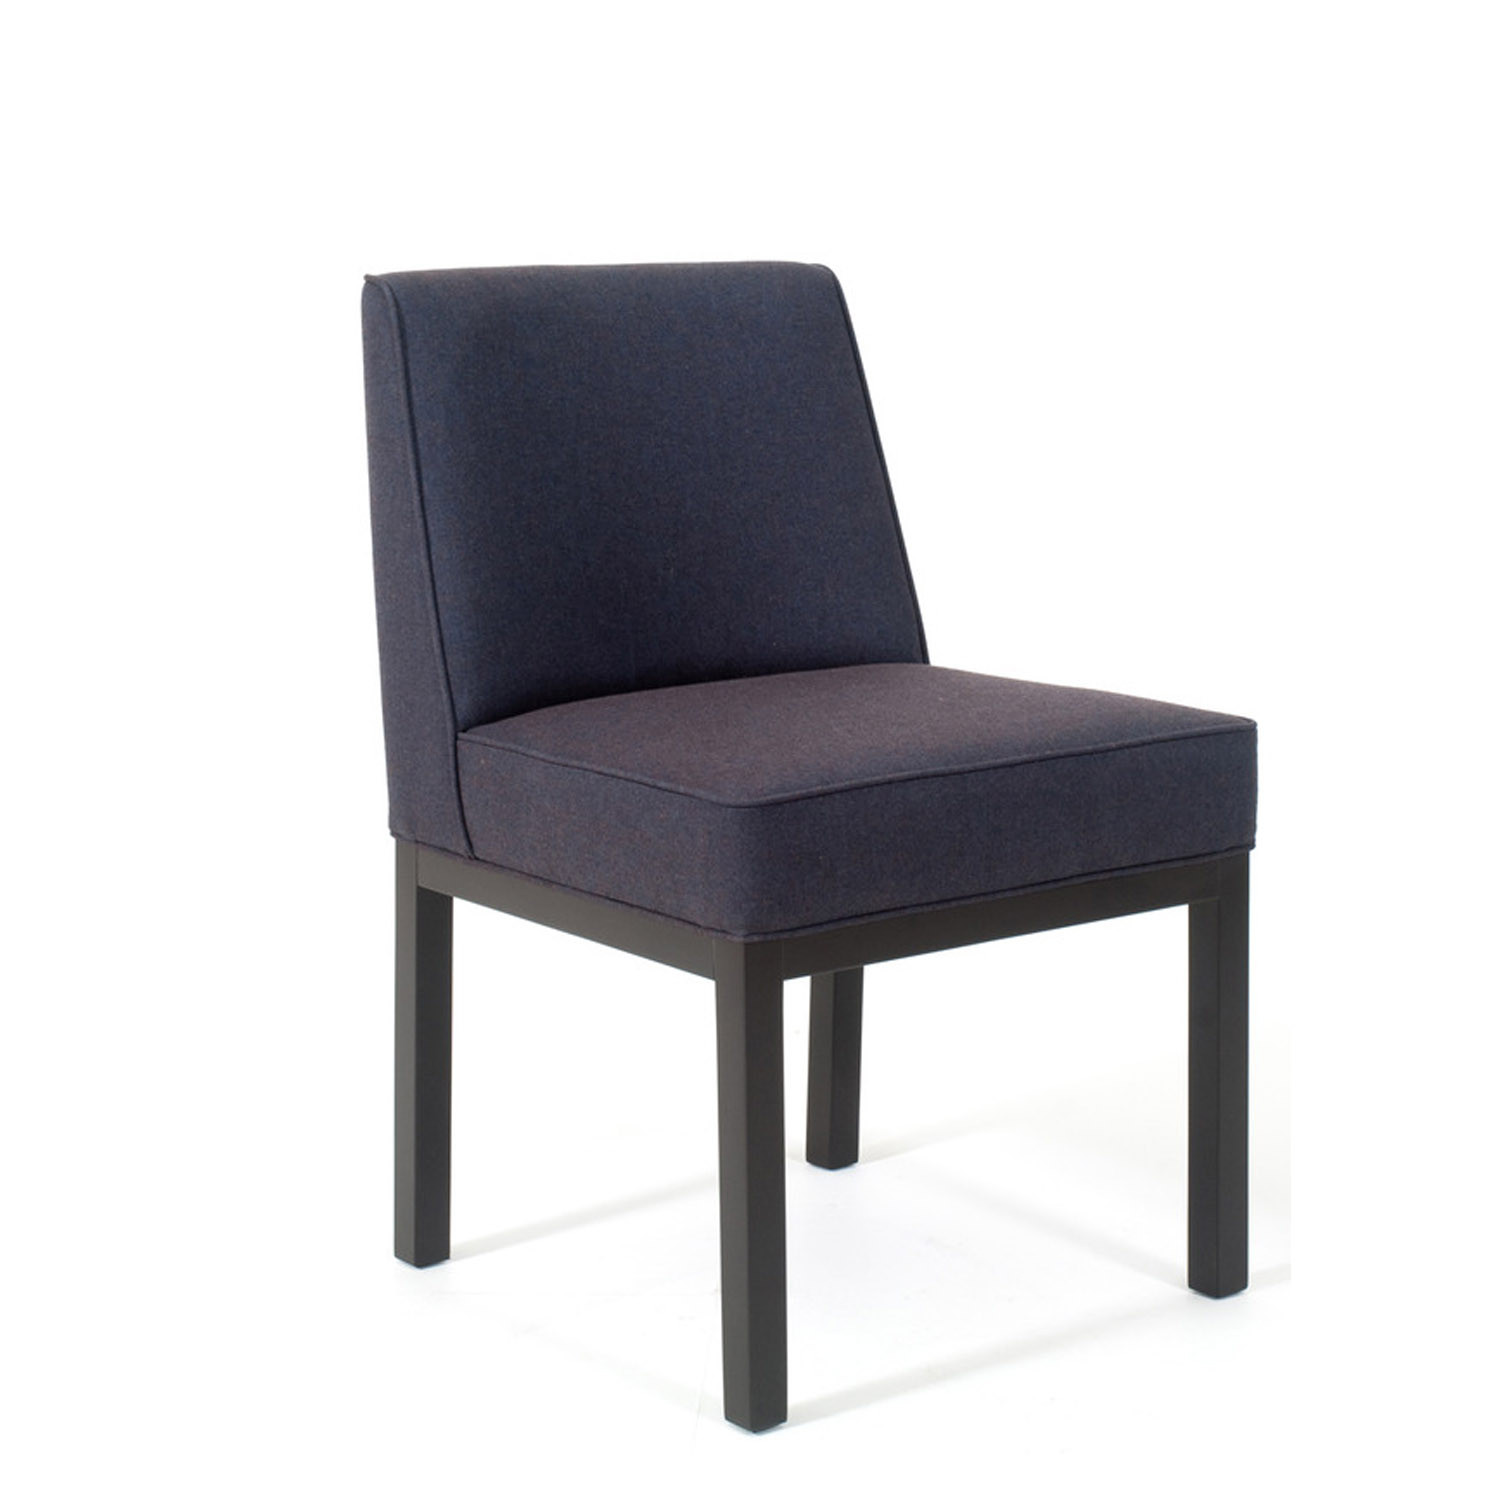 Louise Chair by Jules Wabbes